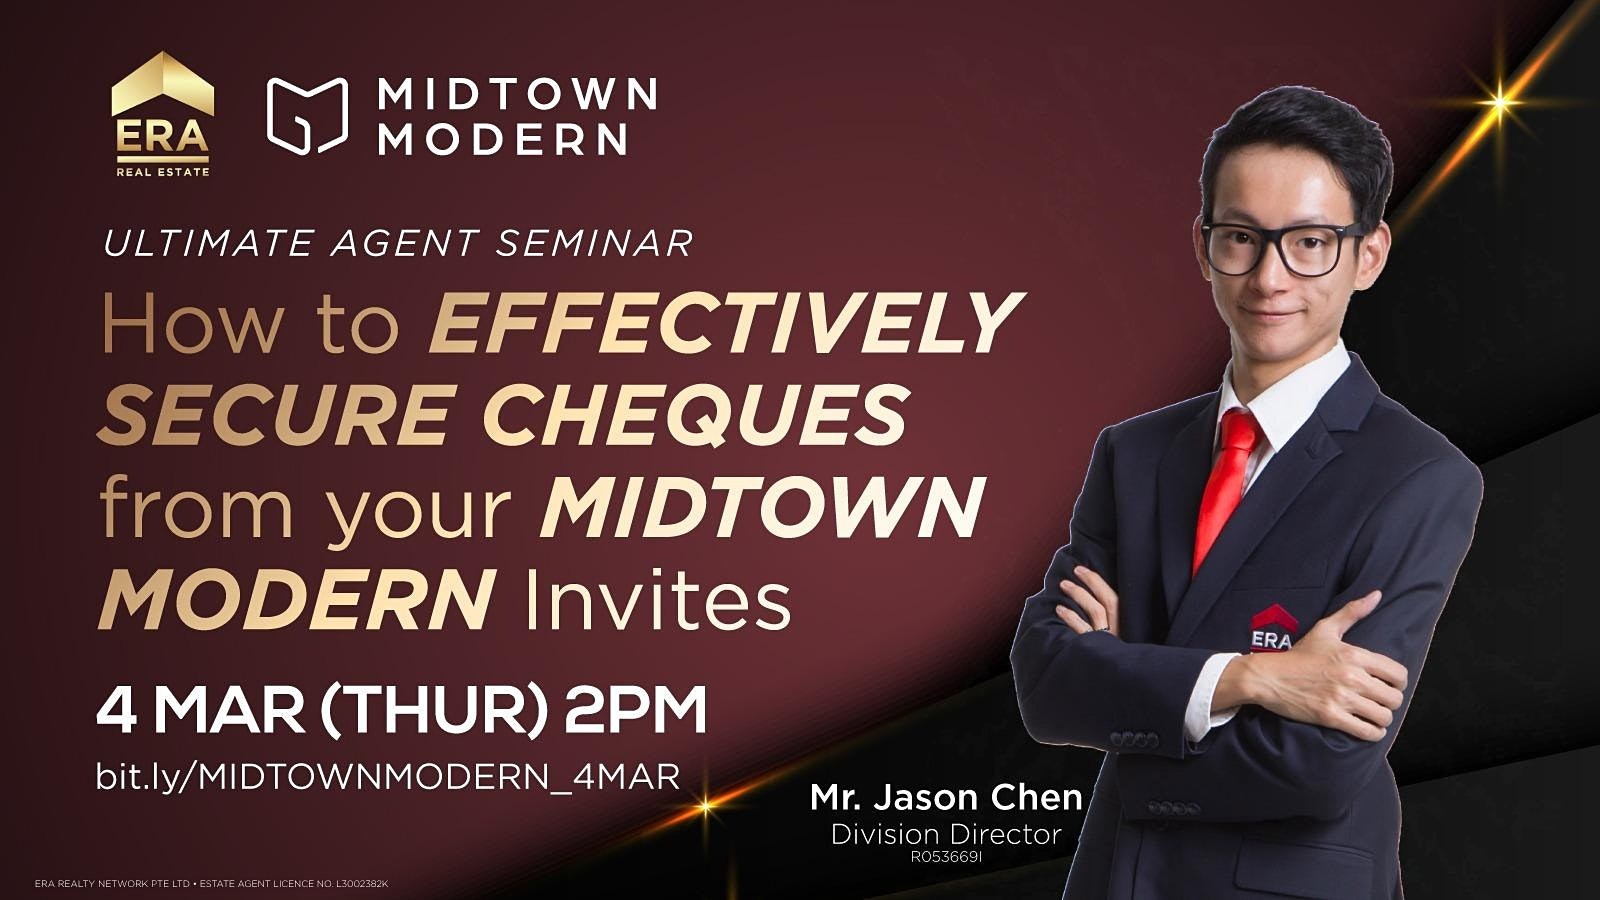 How to Effectively Secure Cheques from your Midtown Modern Invites